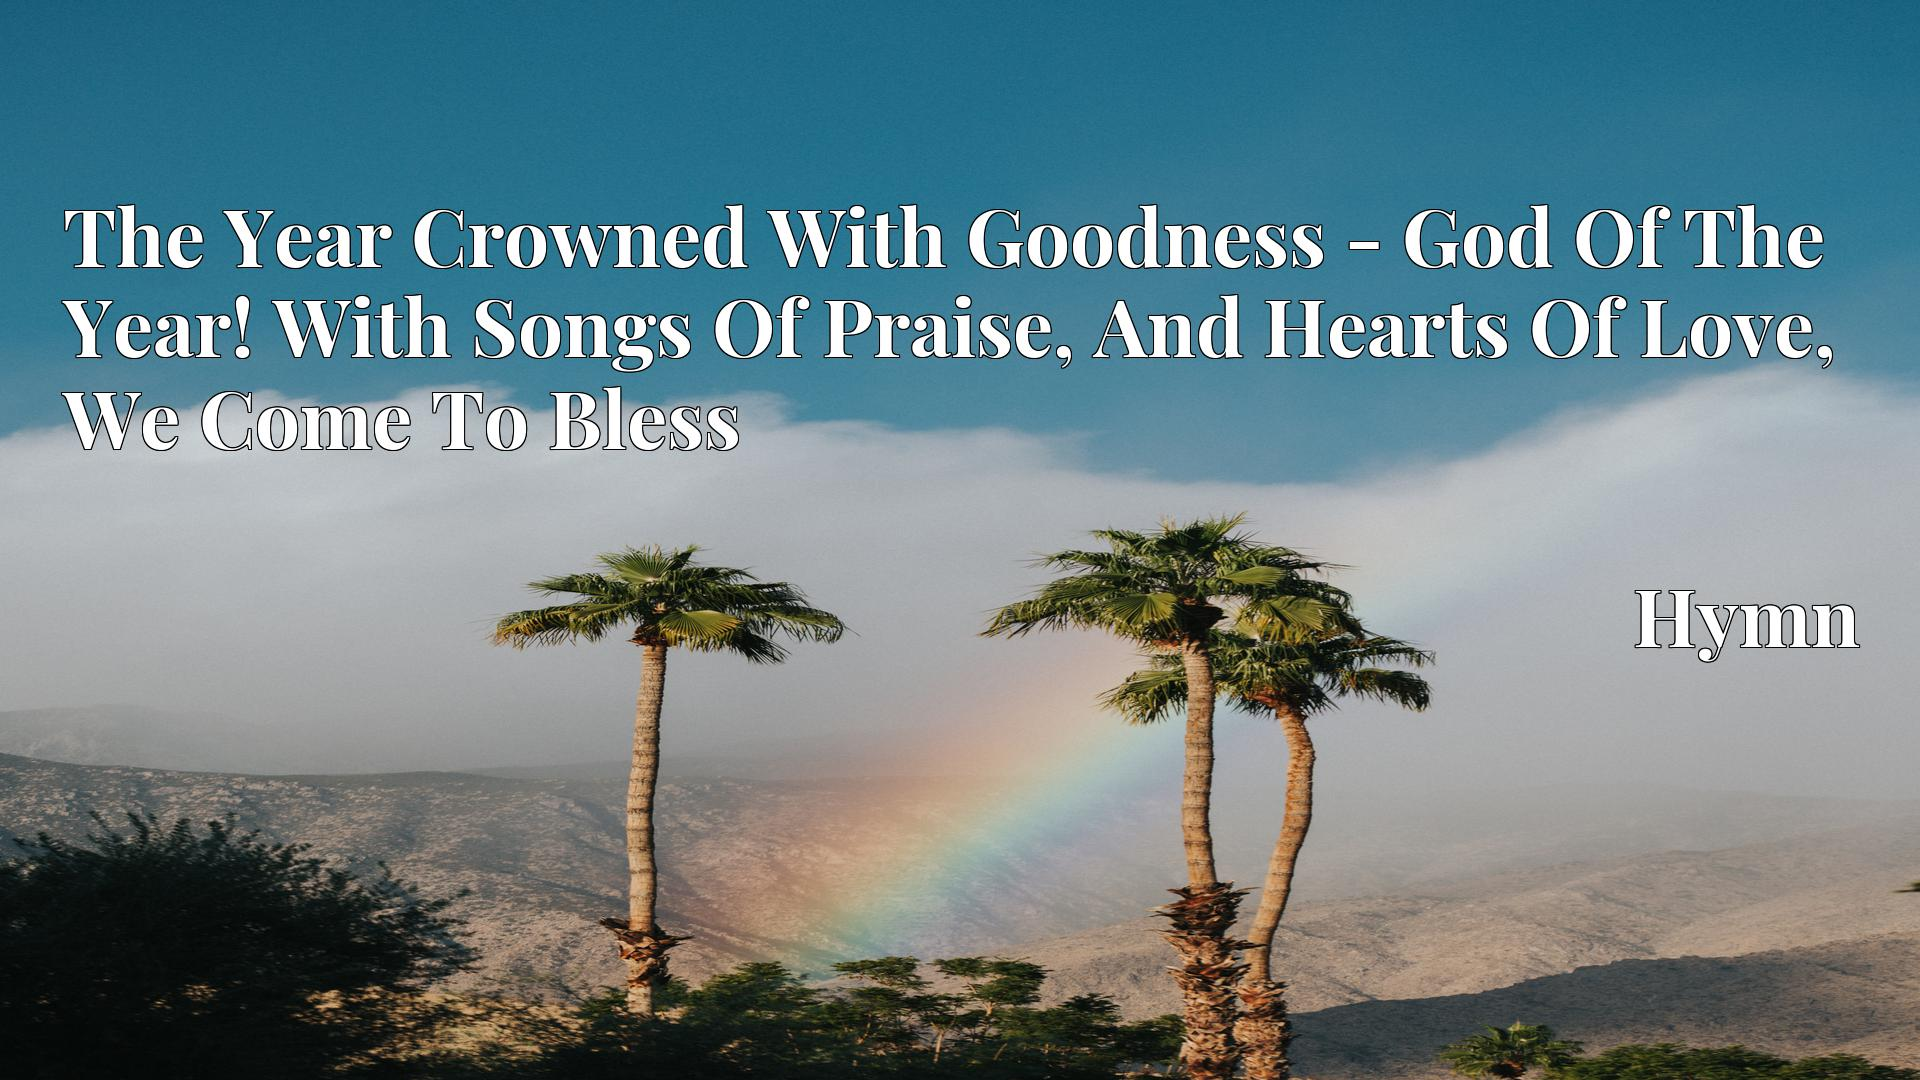 The Year Crowned With Goodness - God Of The Year! With Songs Of Praise, And Hearts Of Love, We Come To Bless - Hymn